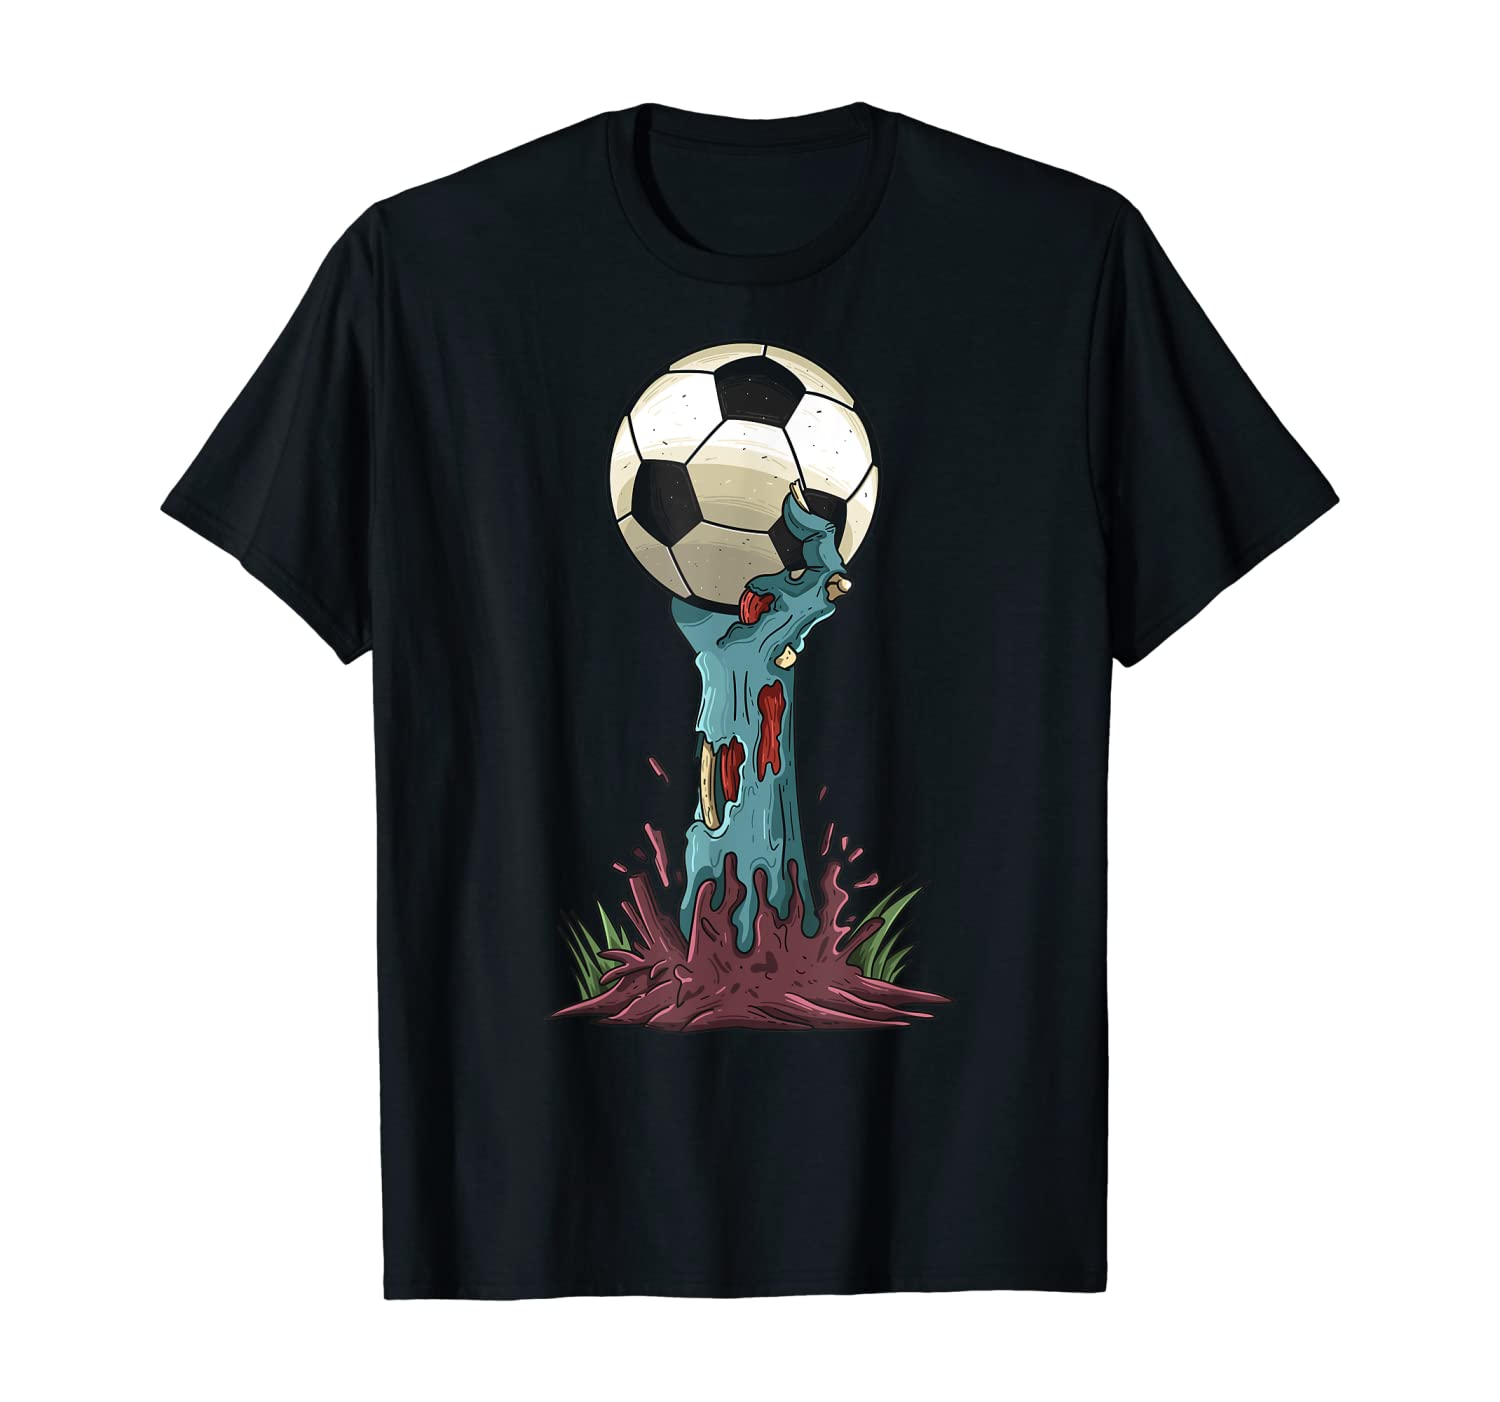 Zombie Hands Soccer Funny Horror Scary Halloween Costume T-Shirt